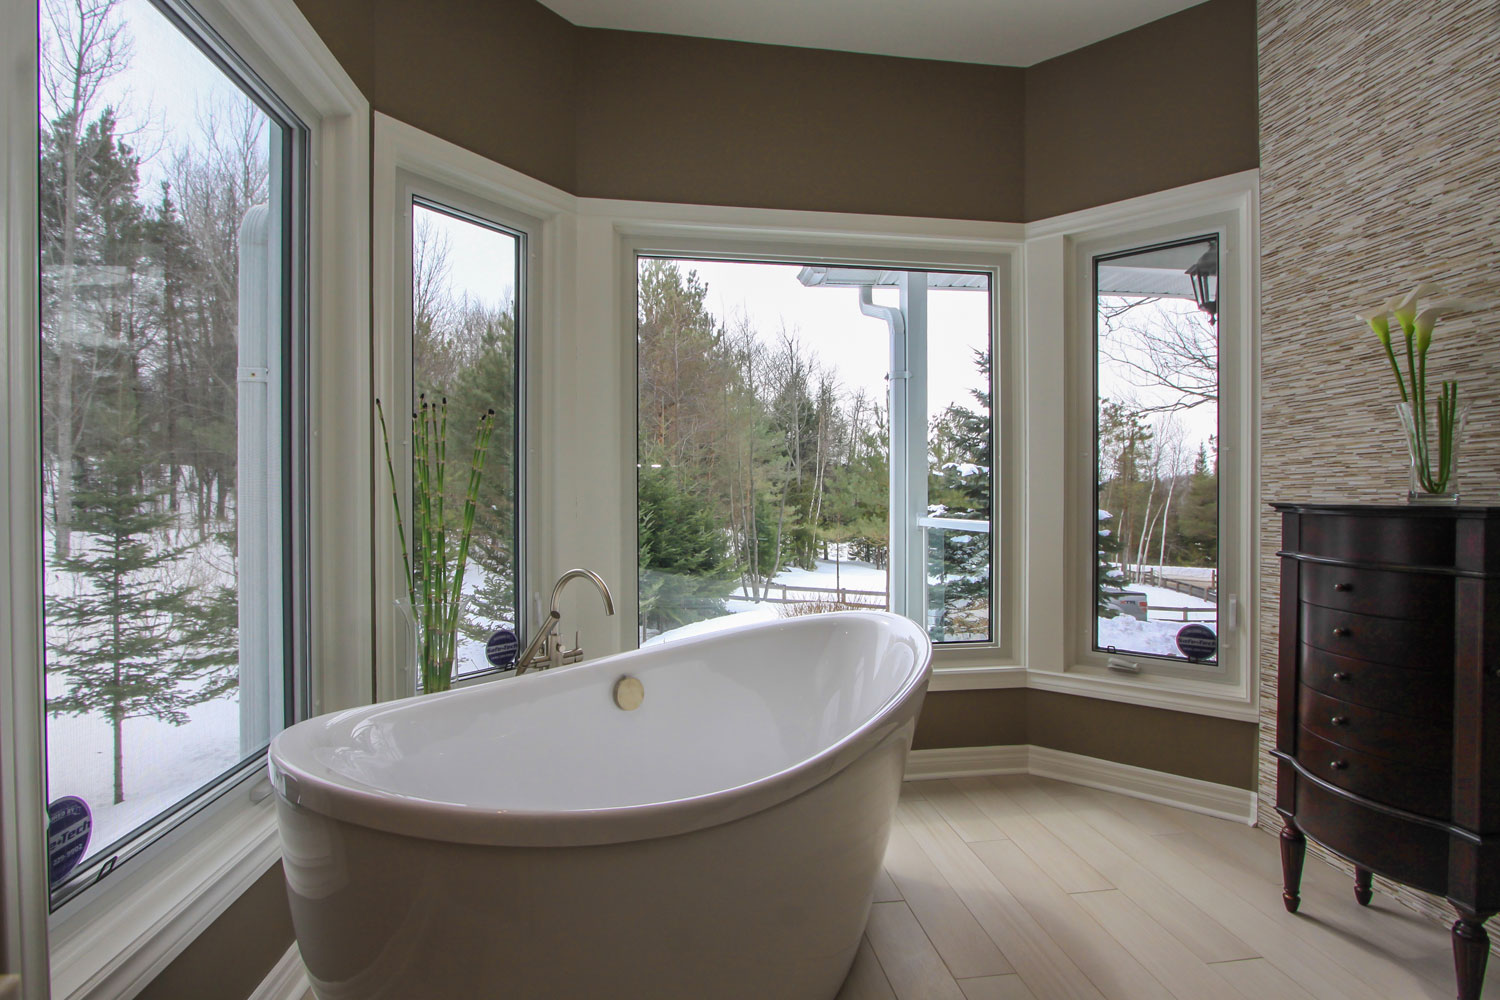 ensuite with freestanding soaker tub - Total Living Concepts barrie ontario